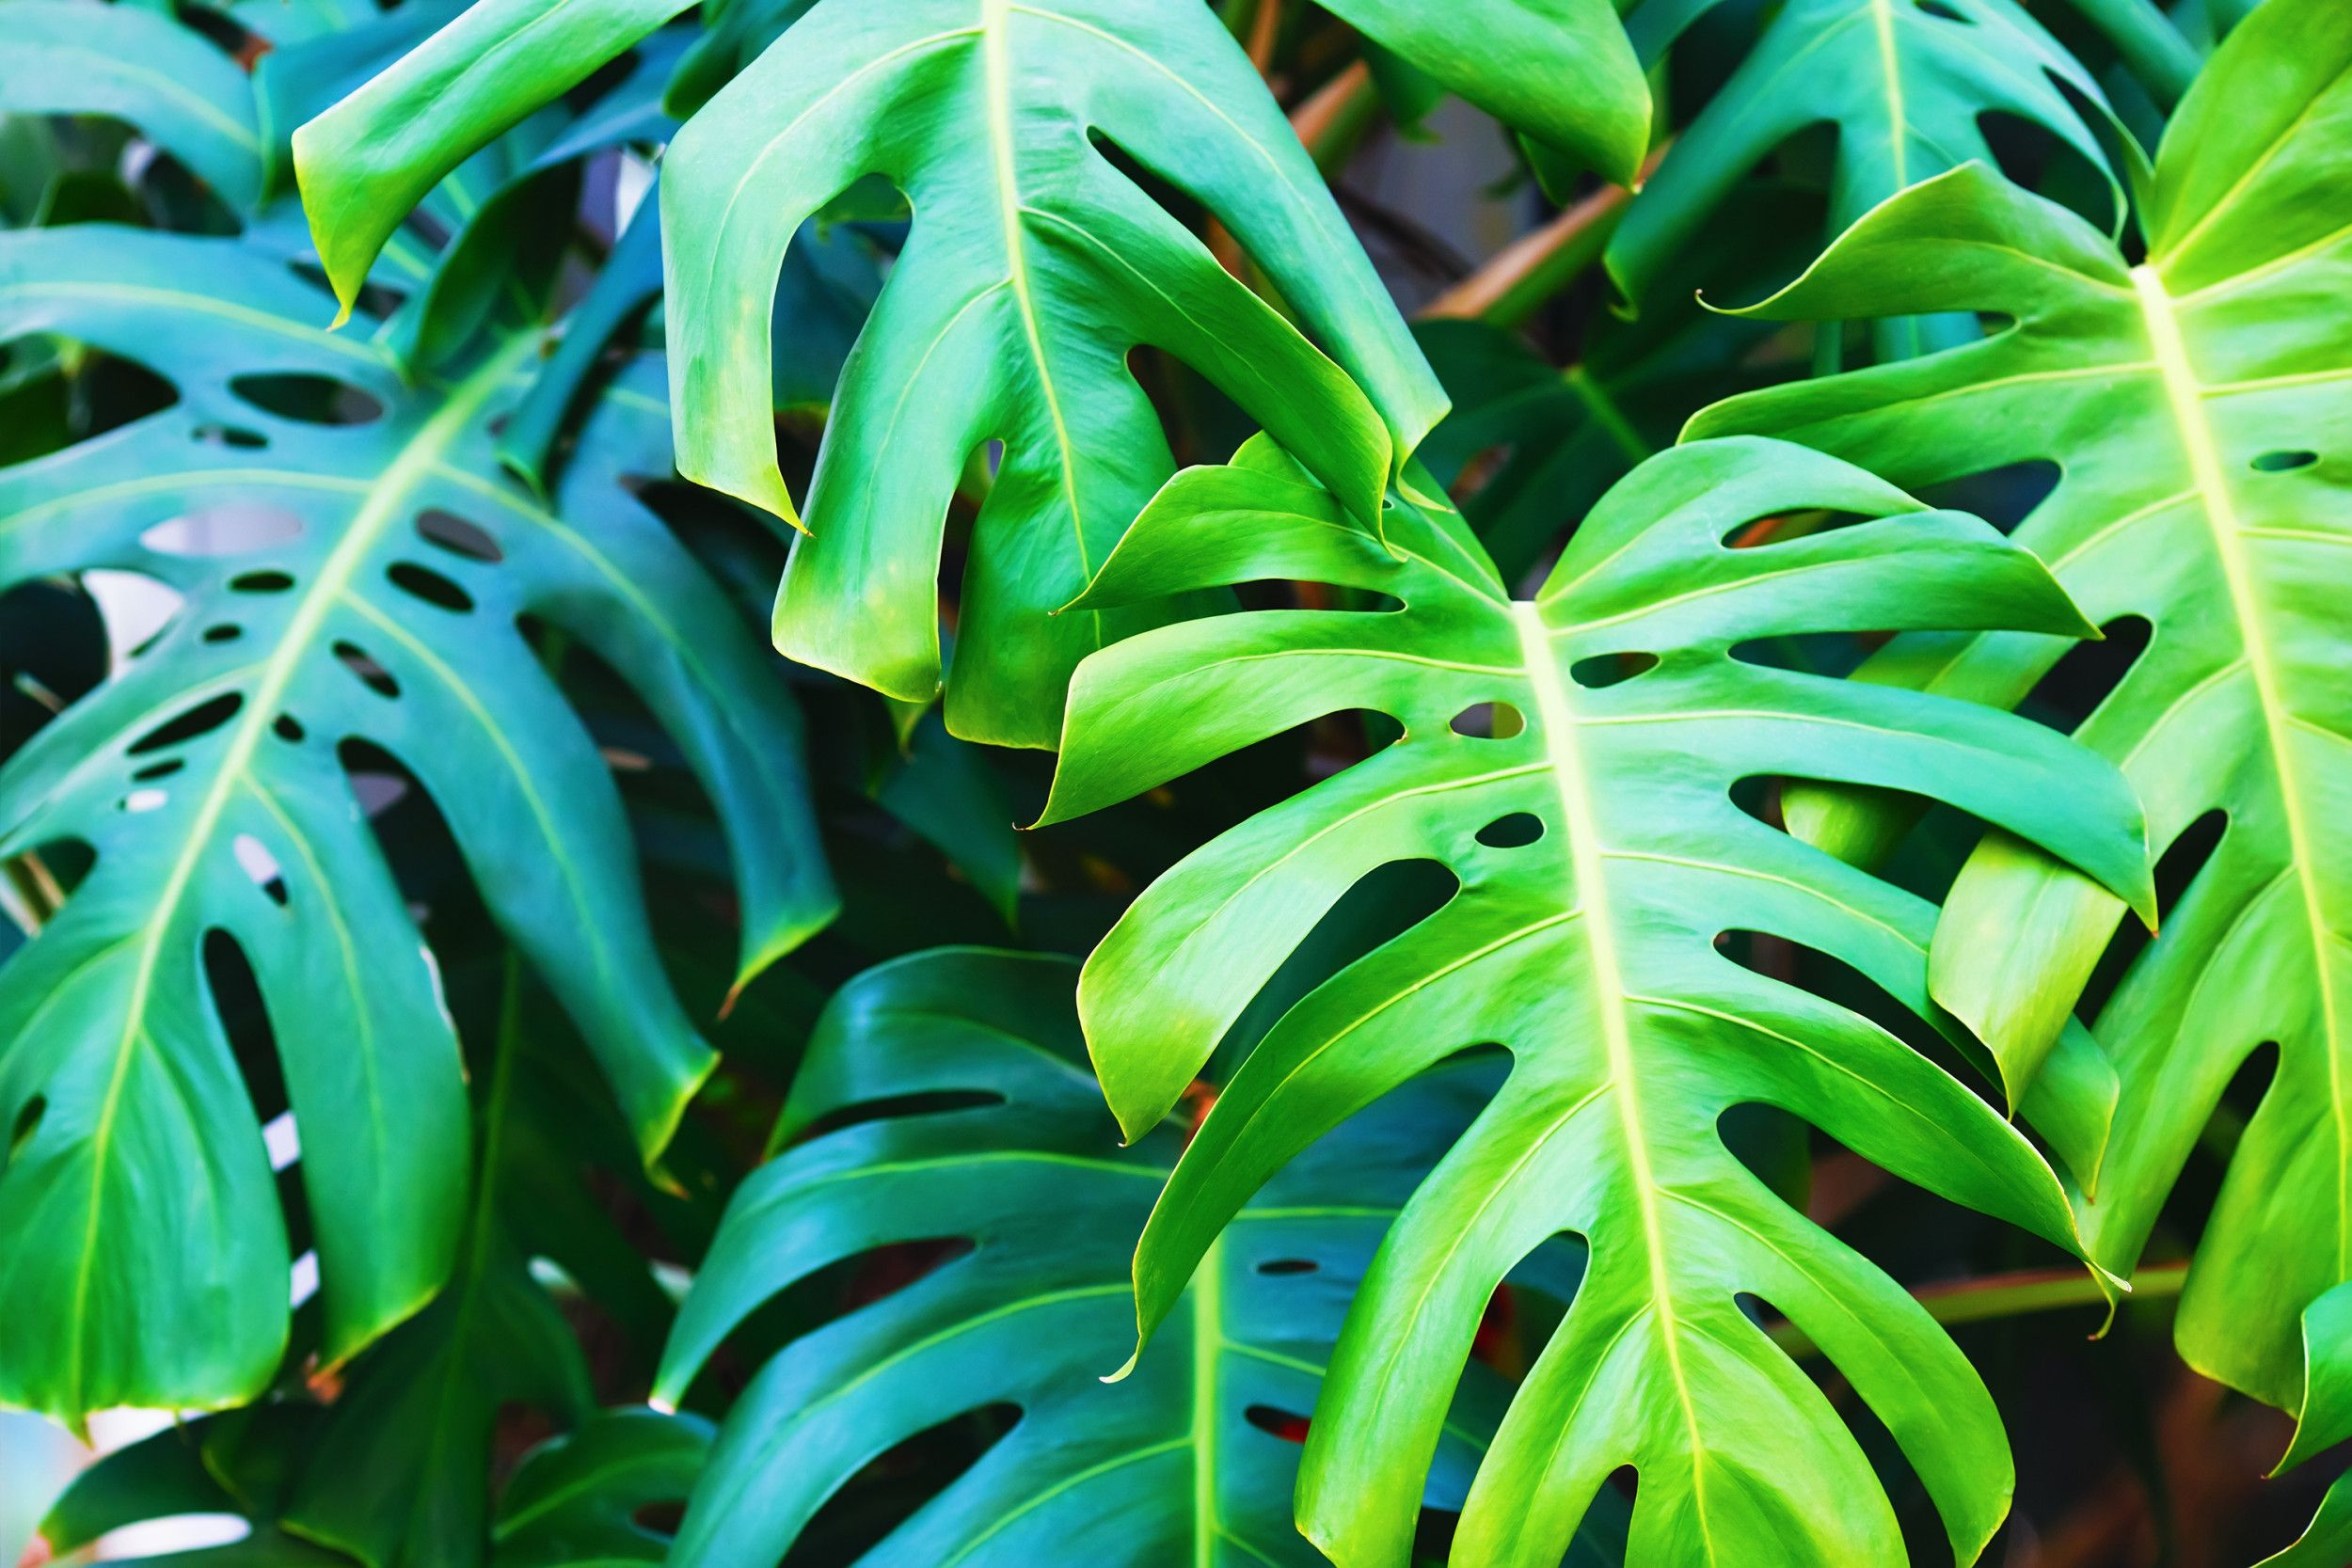 Your houseplants aren't actually improving the air quality